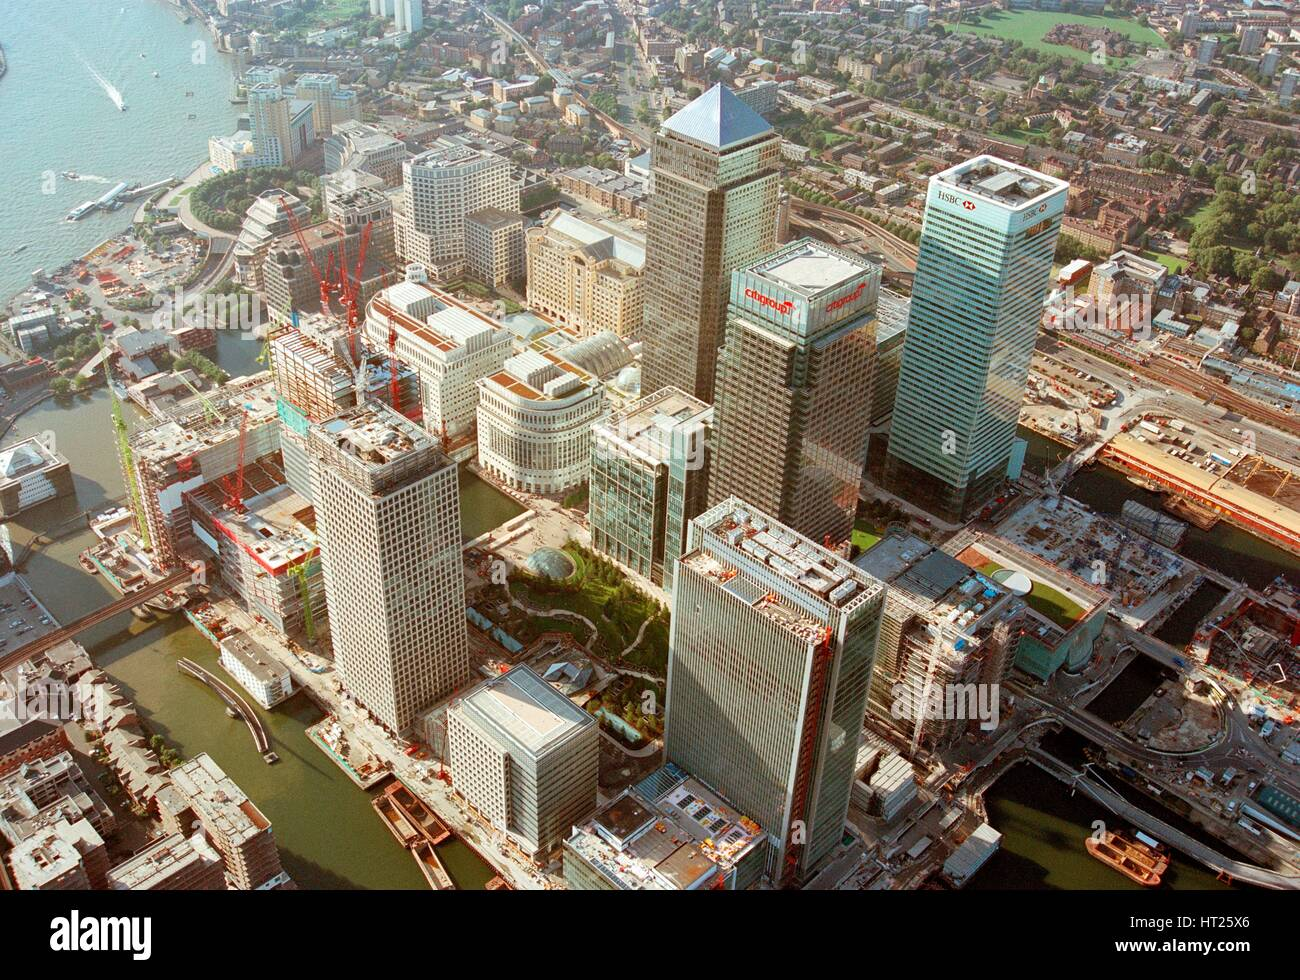 Canary Wharf, Docklands, Poplar, London, c2000s. Artist: Unknown. - Stock Image